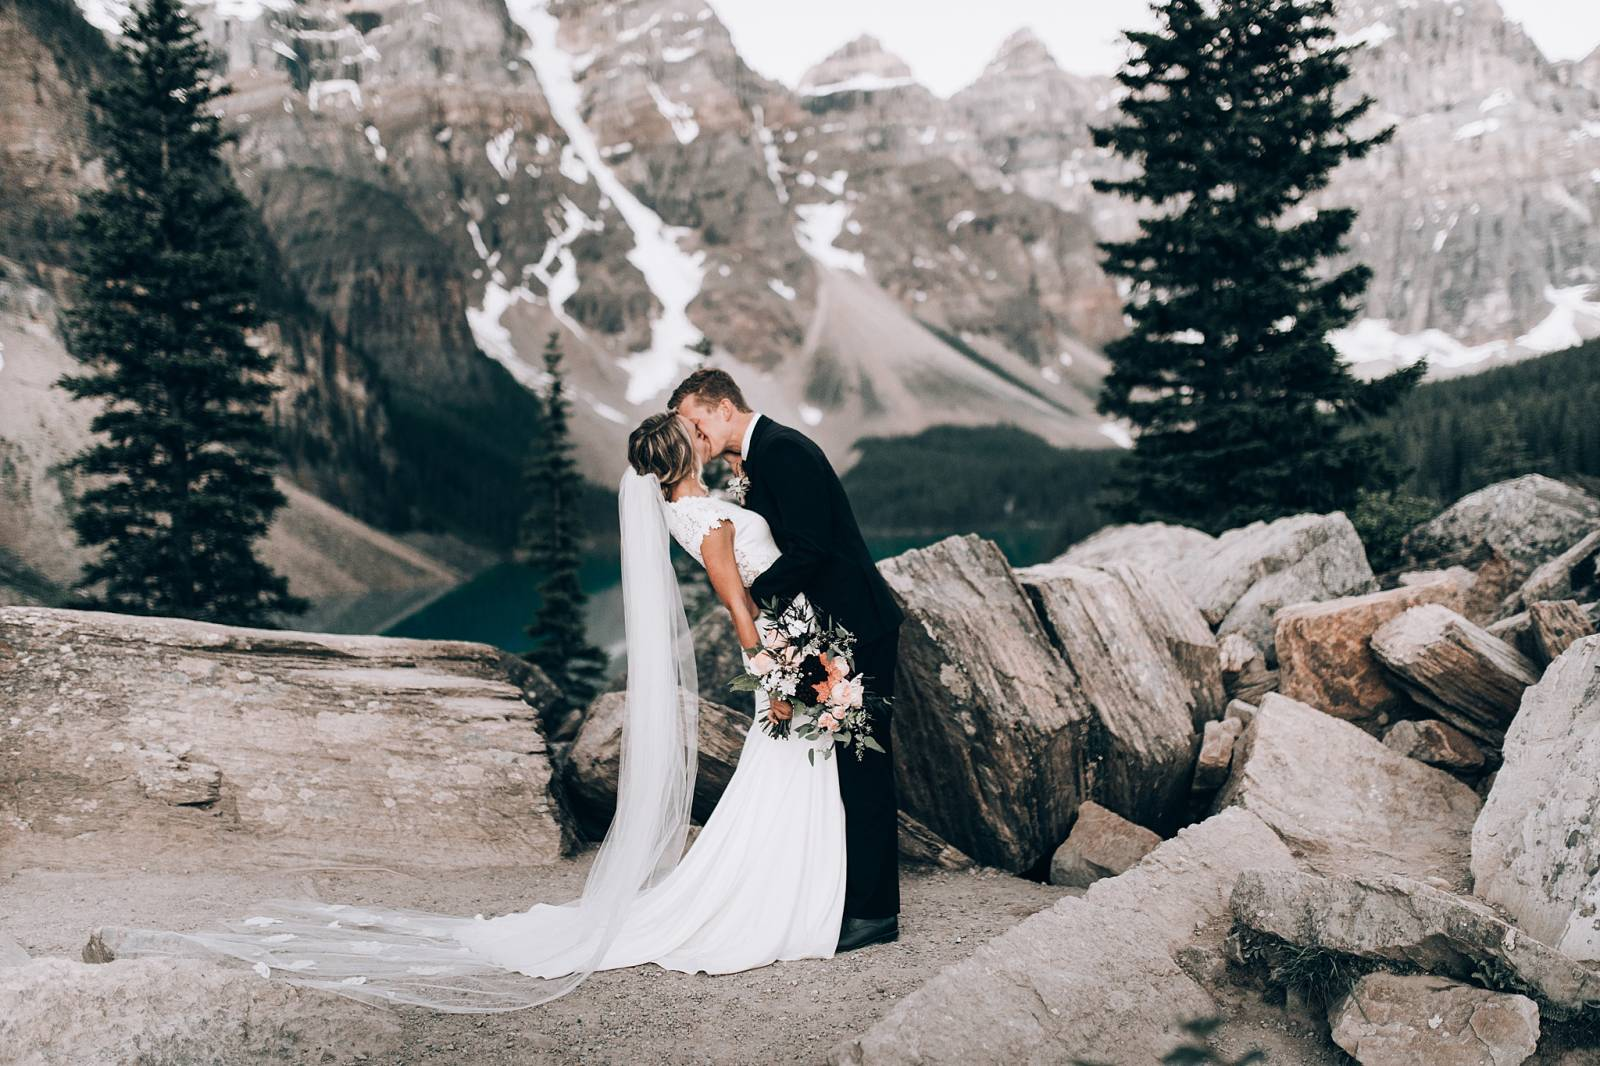 stunning mountain portrait of bride and groom | Lake Louise, Alberta wedding inspiration